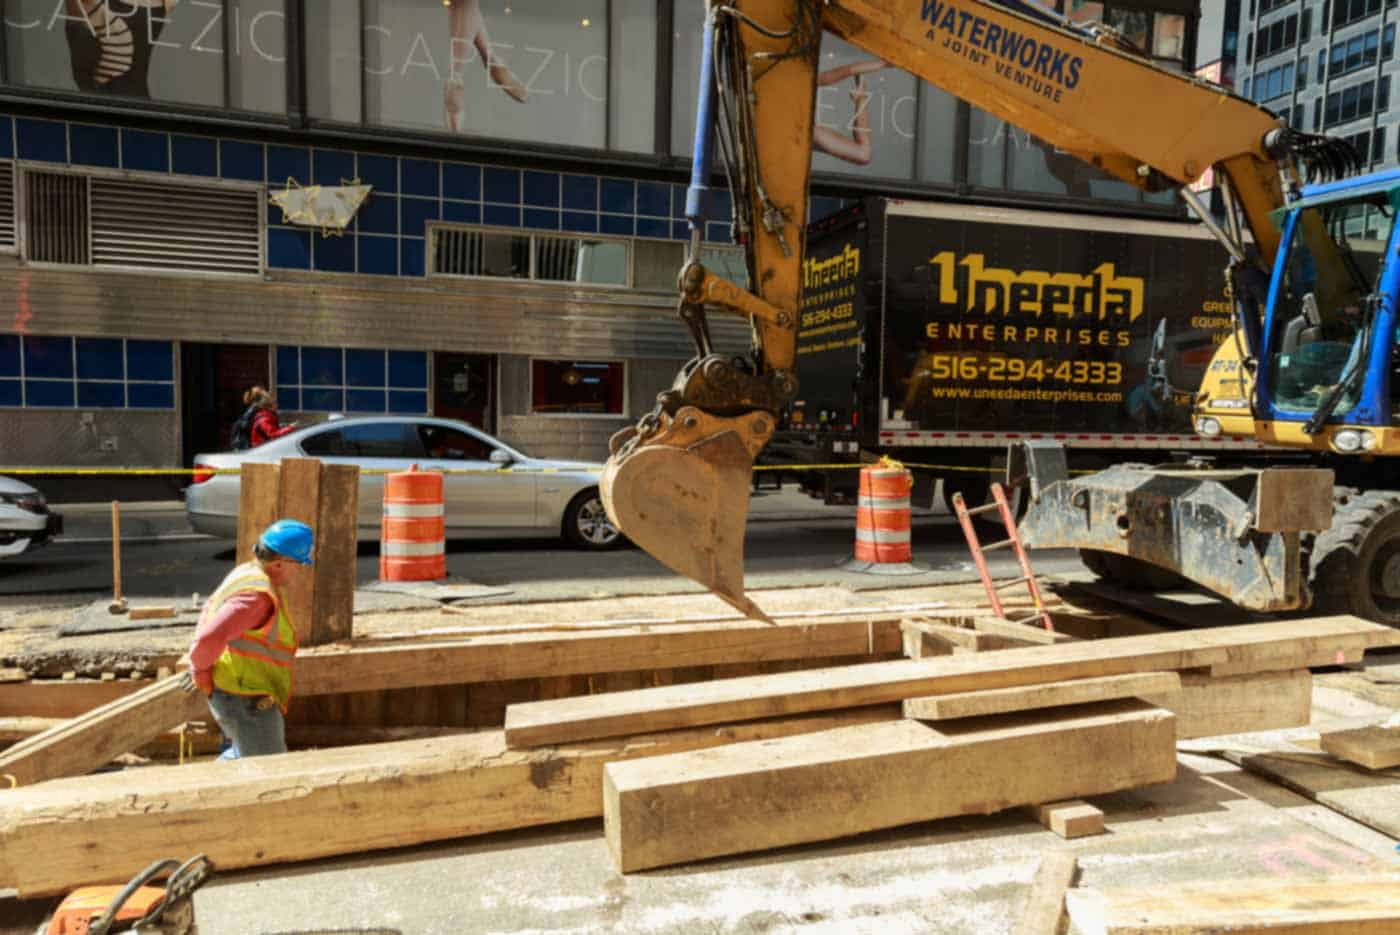 Steam pipe explosion in NYC causes asbestos concerns